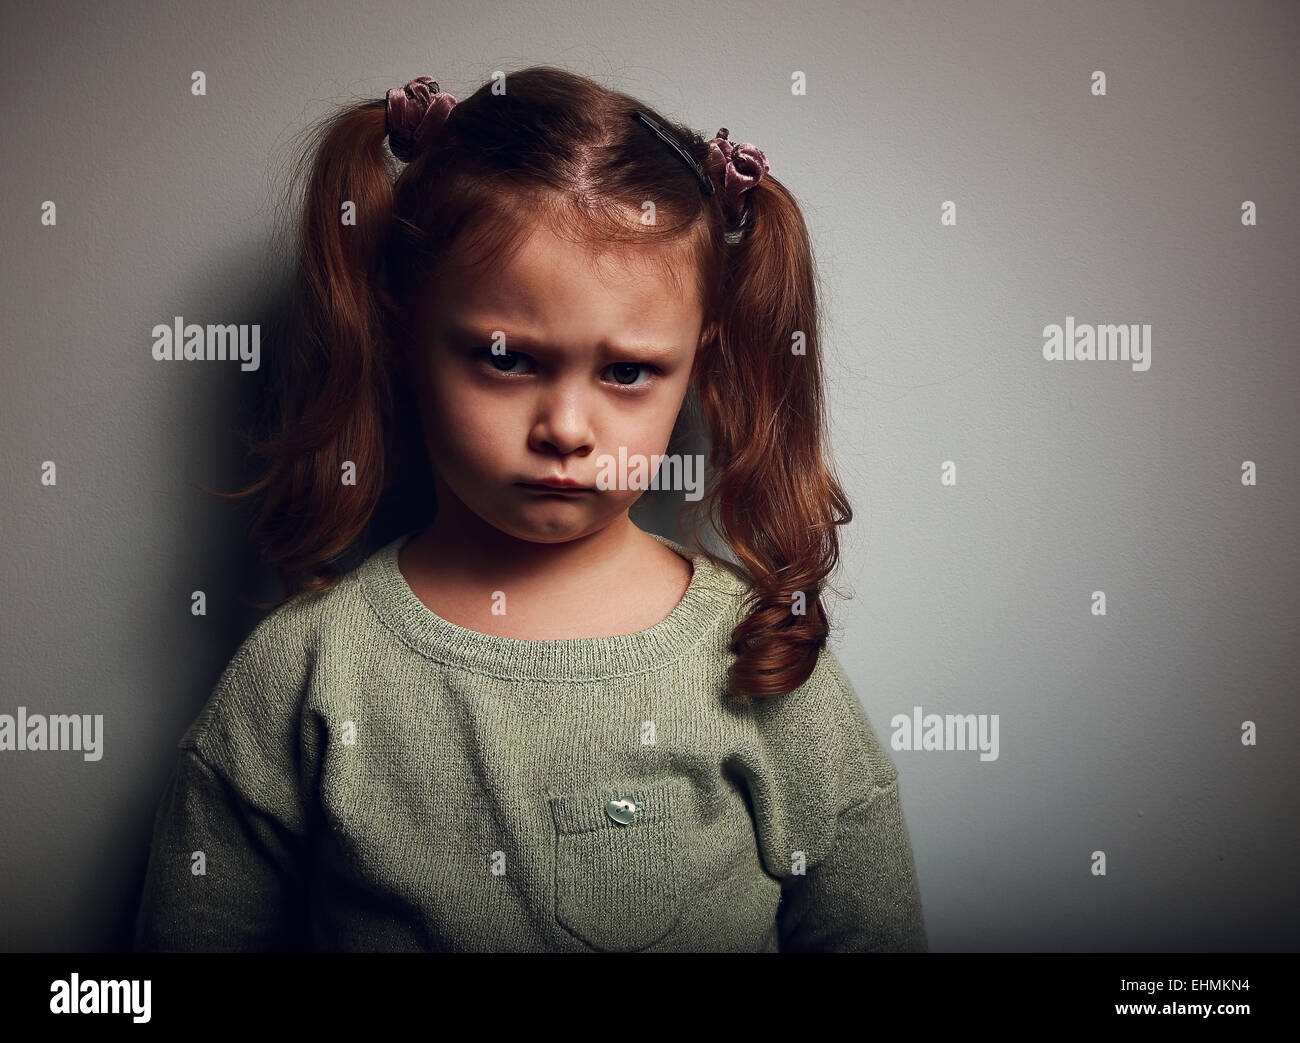 Sad kid girl with long hair looking. Closeup vintage portrait - Stock Image